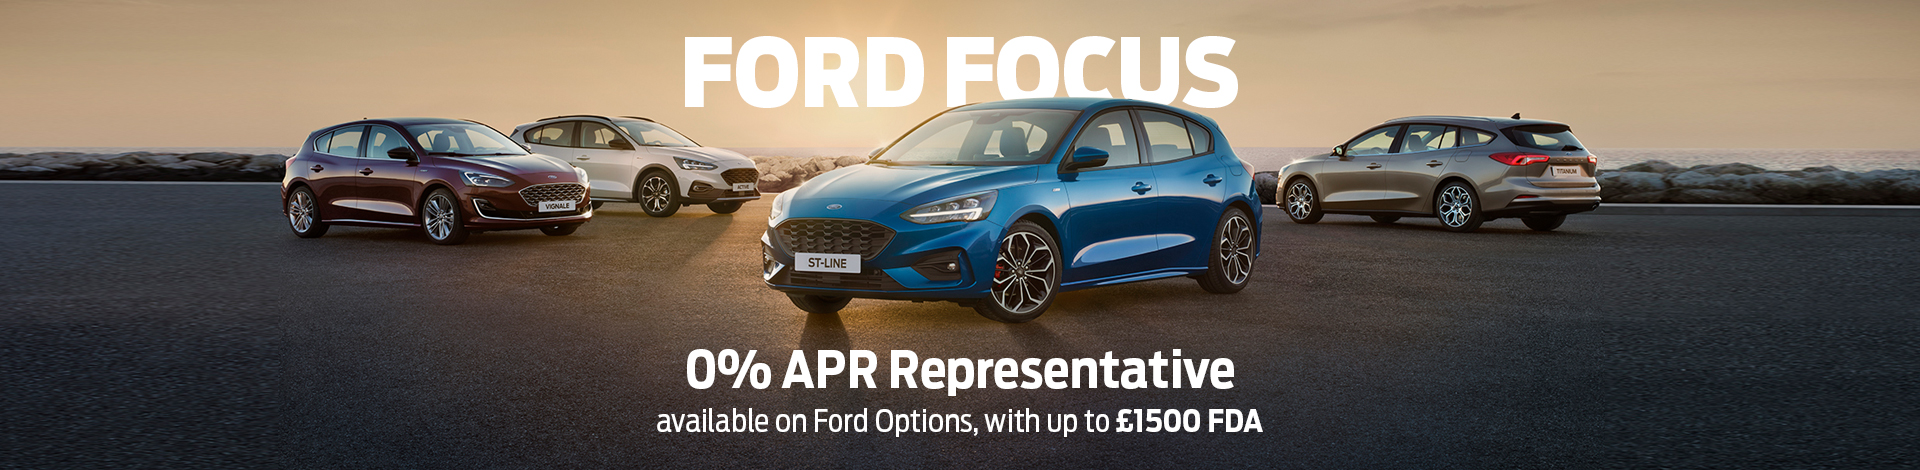 Ford Focus Page